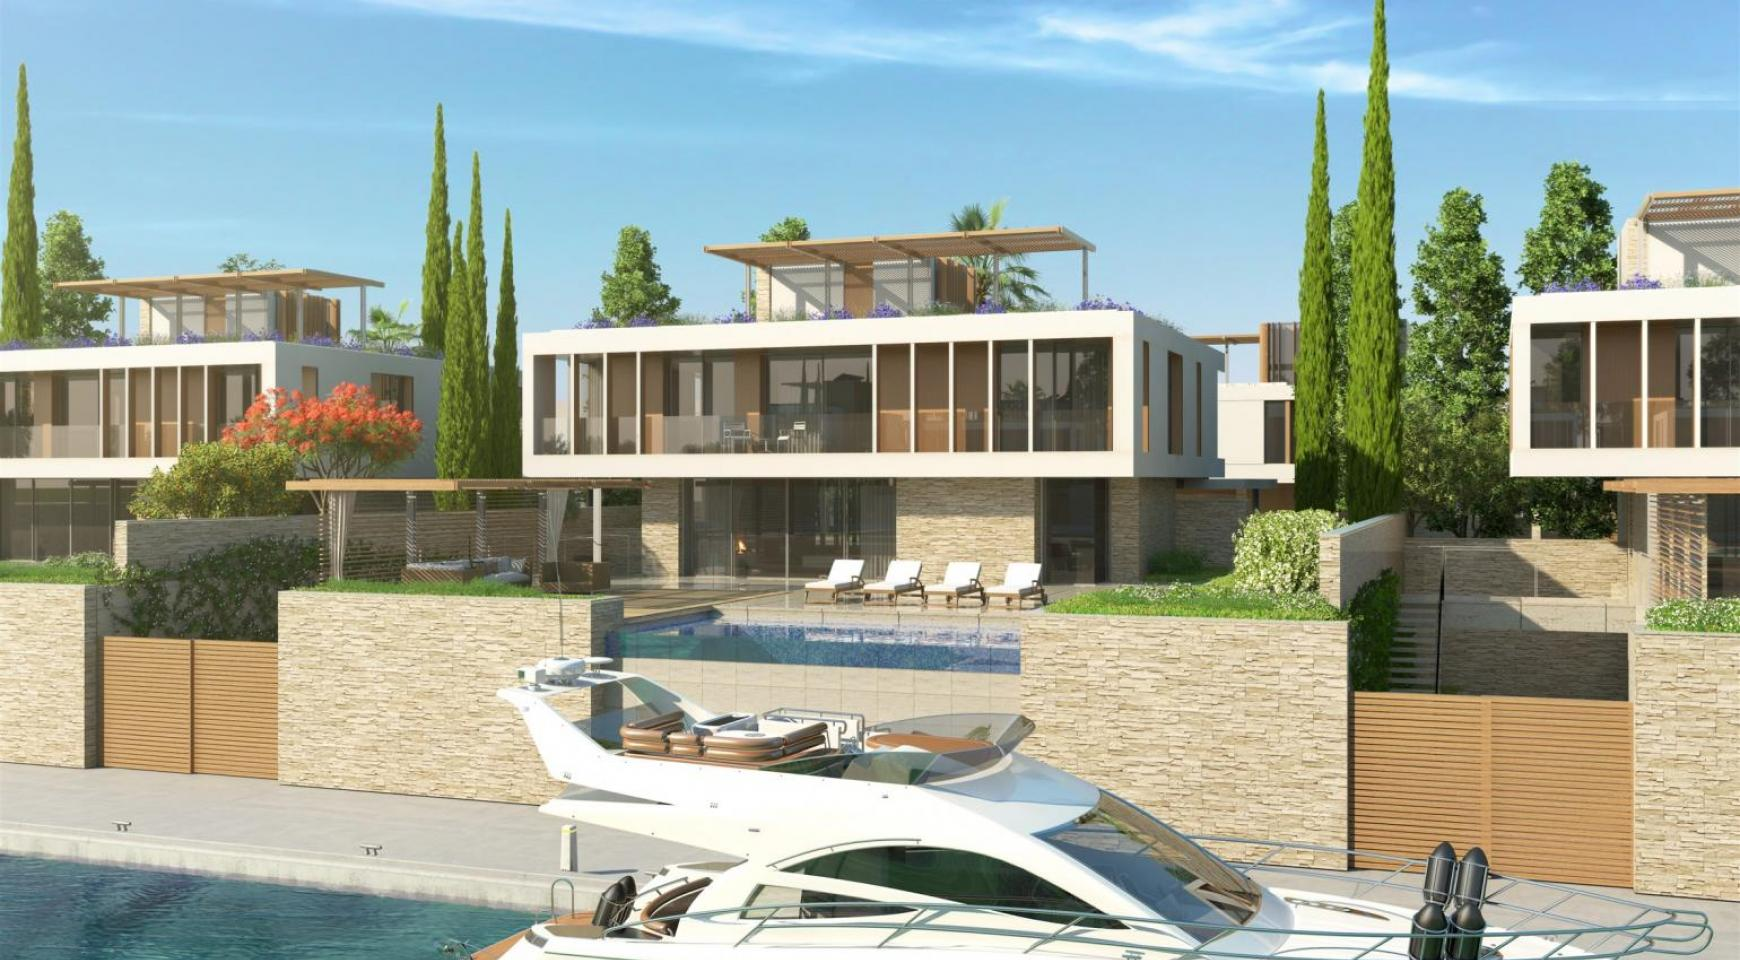 Stunning 3 Bedroom Villa in an Exclusive Project by the Sea - 4